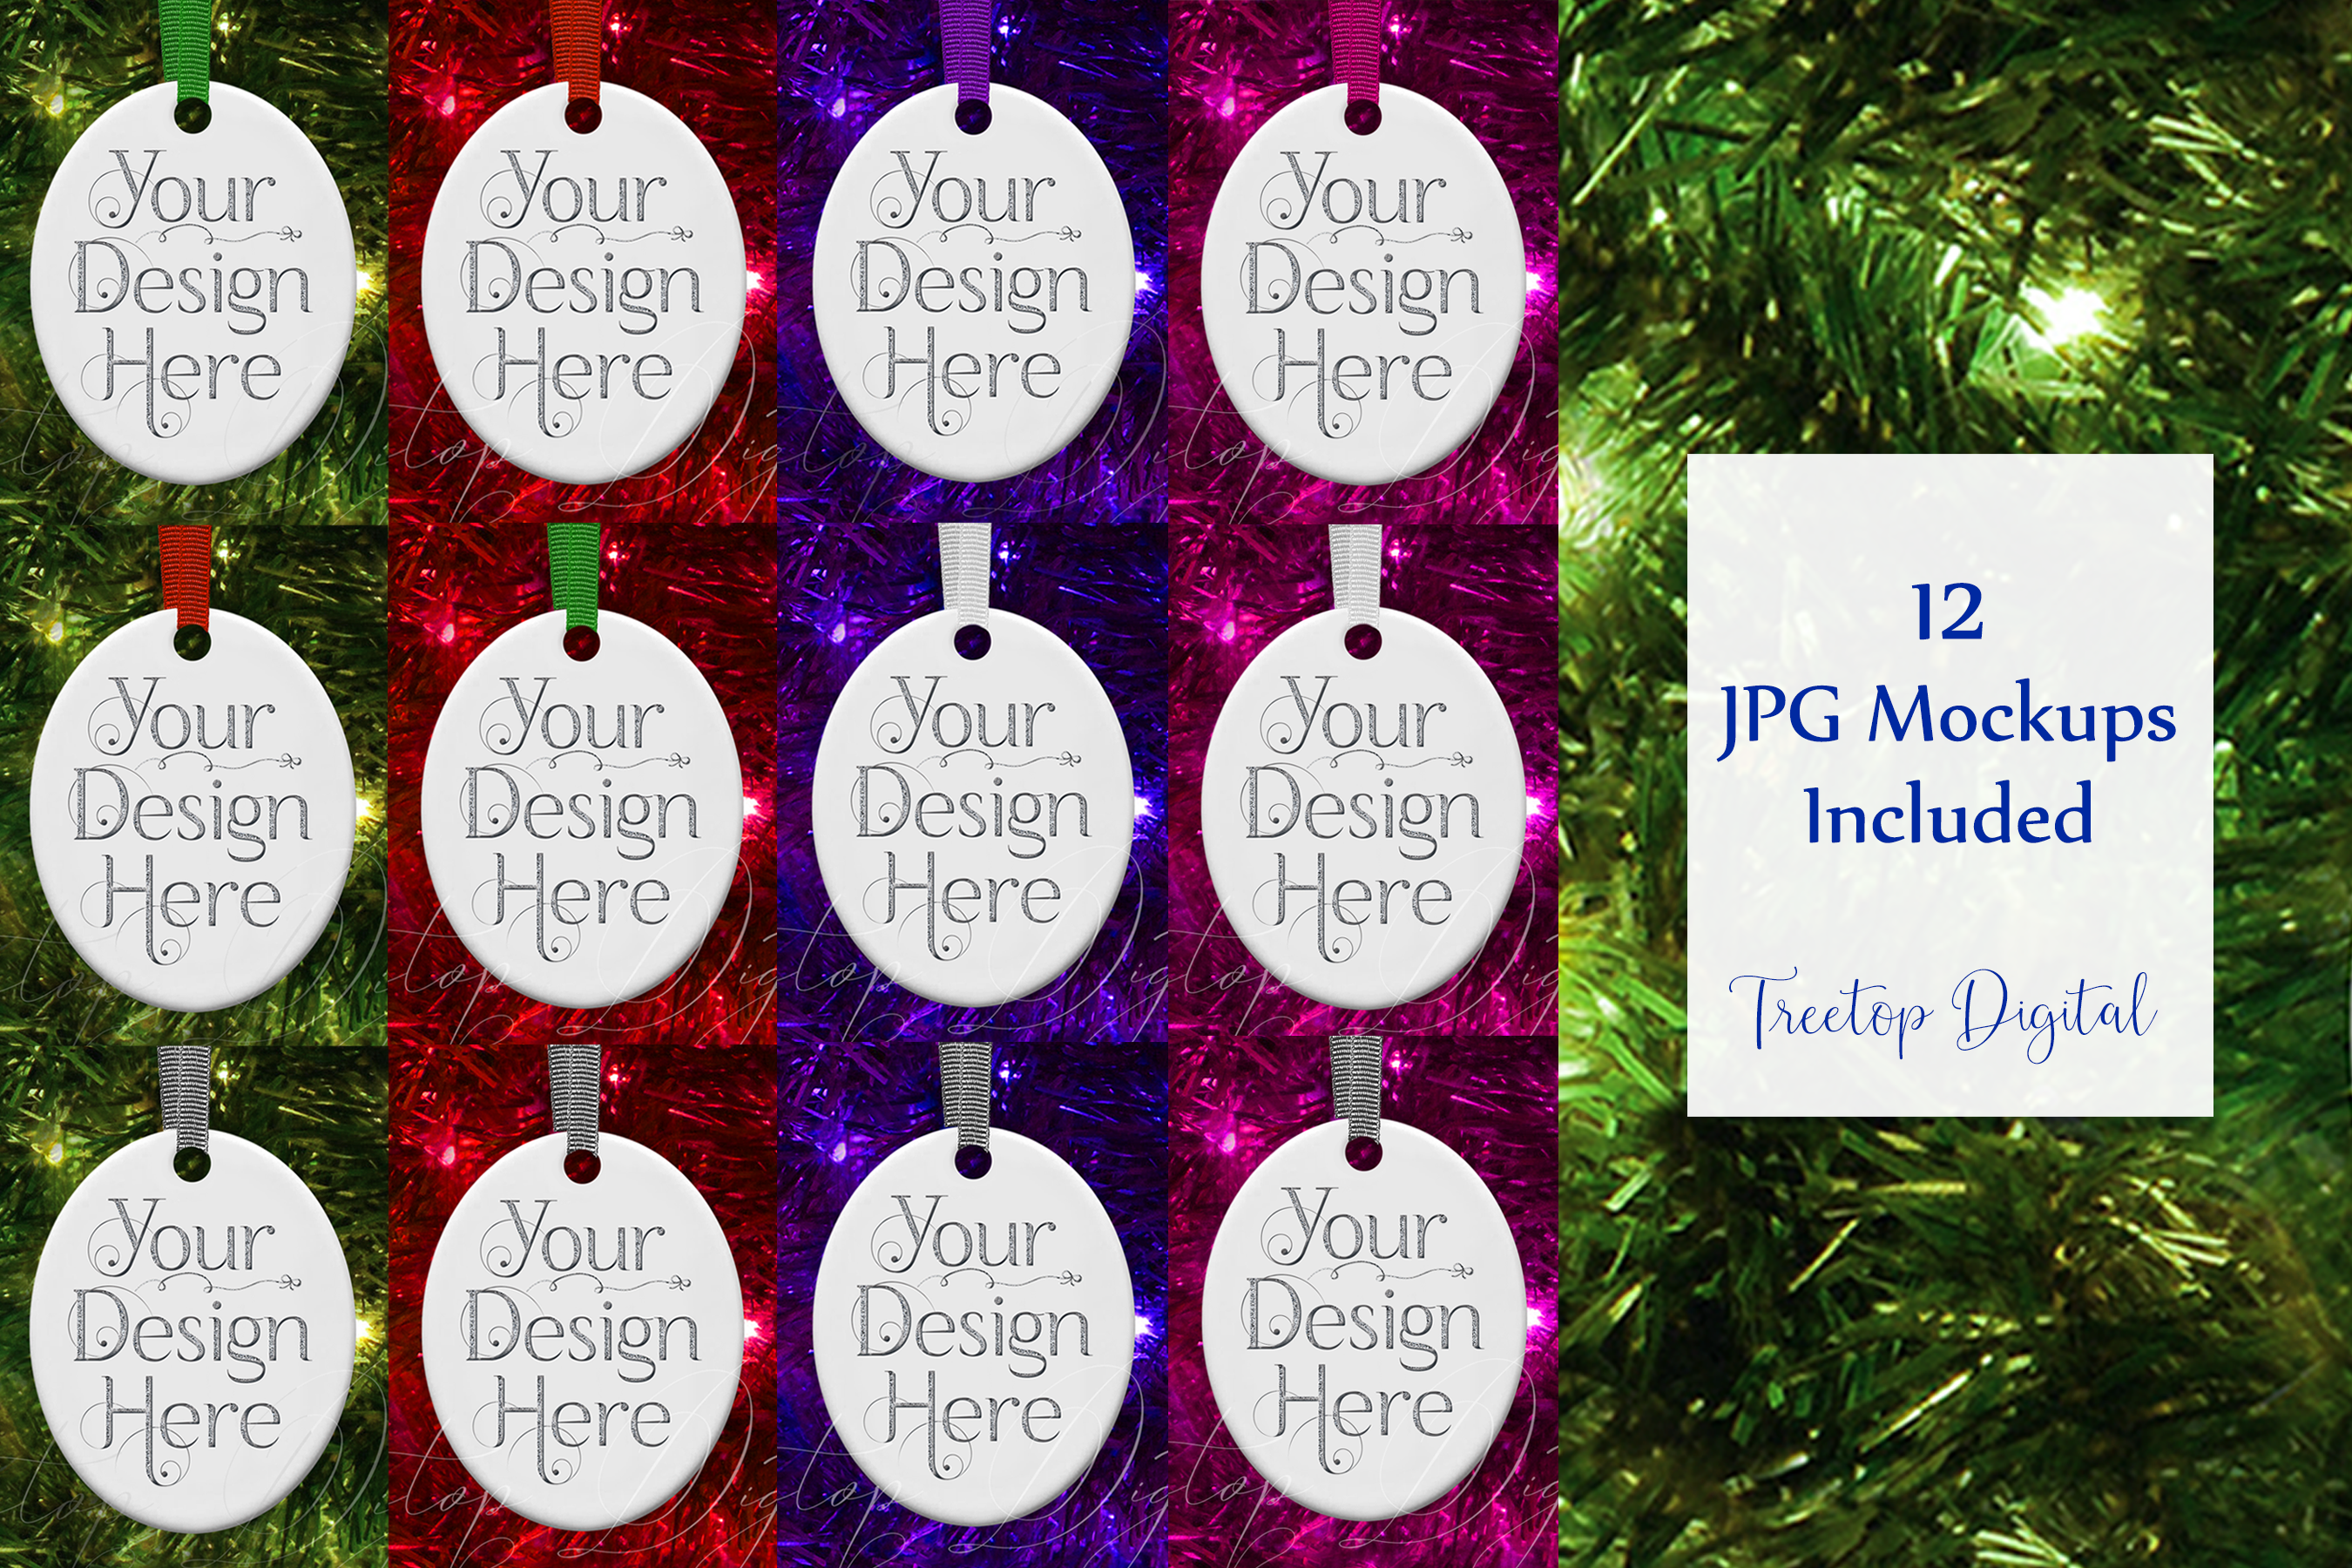 Oval Christmas Ornament Mockup, Bauble Holiday Mock- Up, JPG example image 2